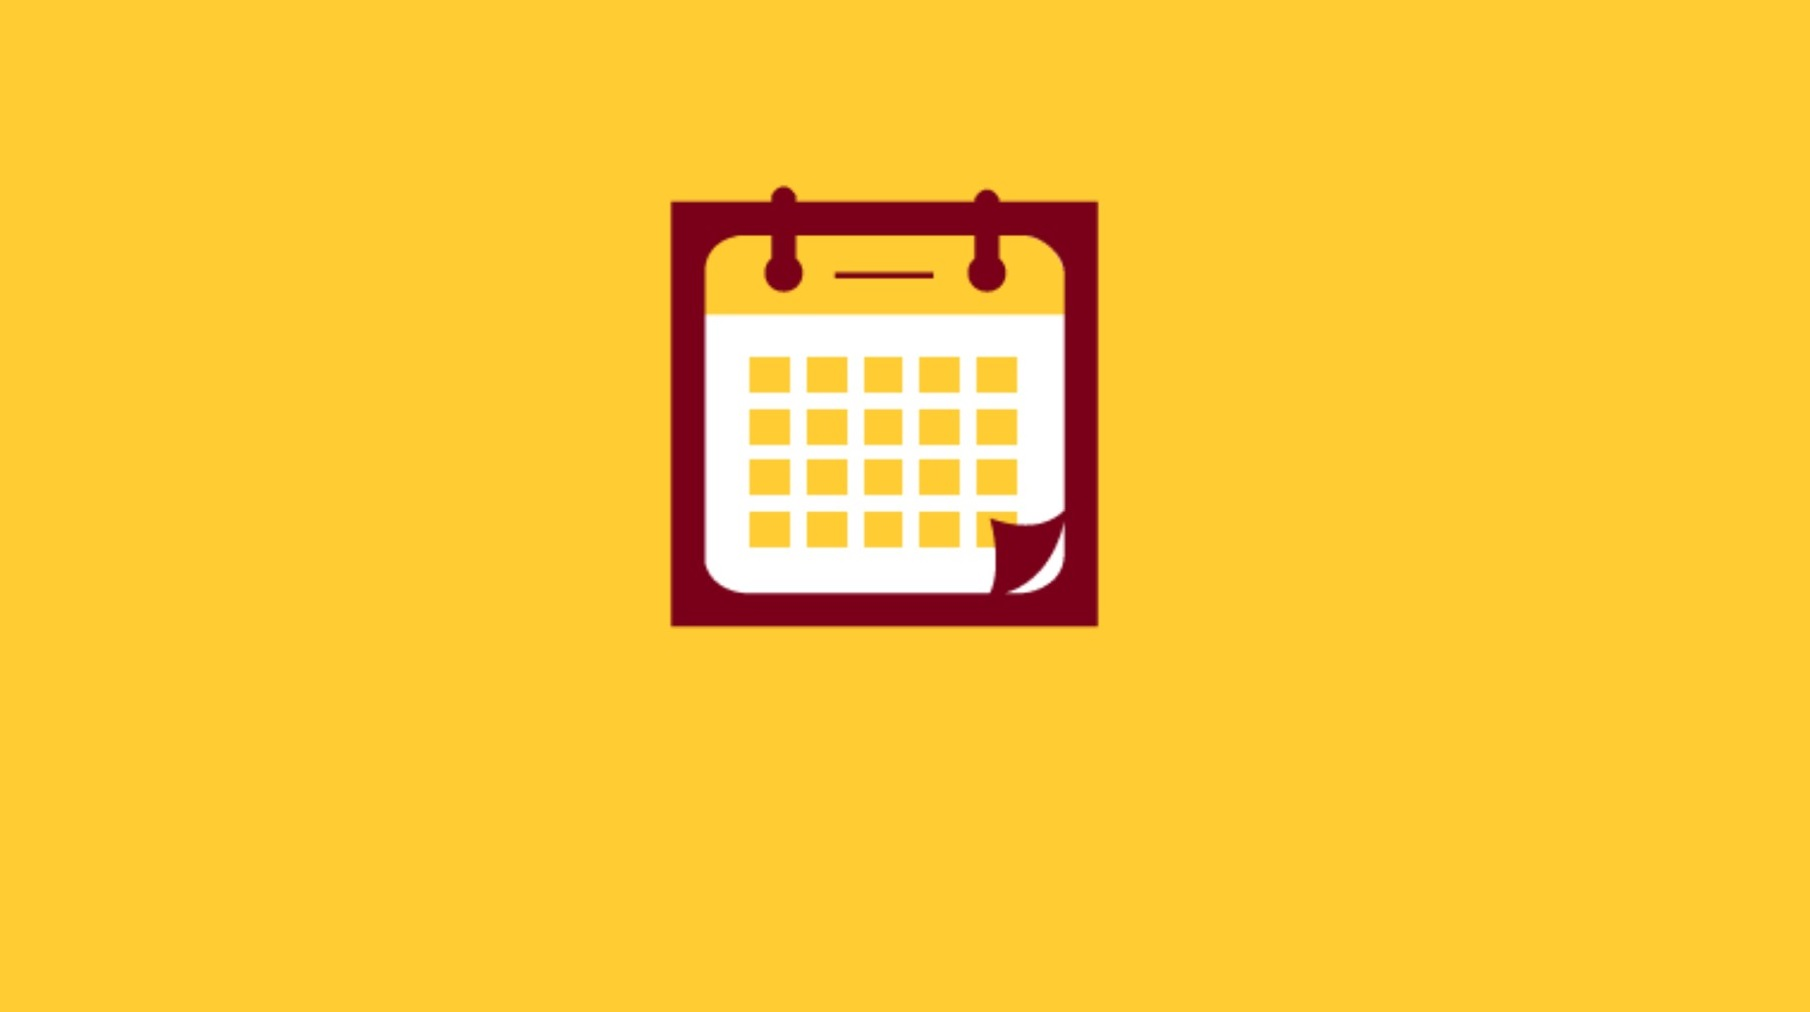 Maroon and gold calendar icon